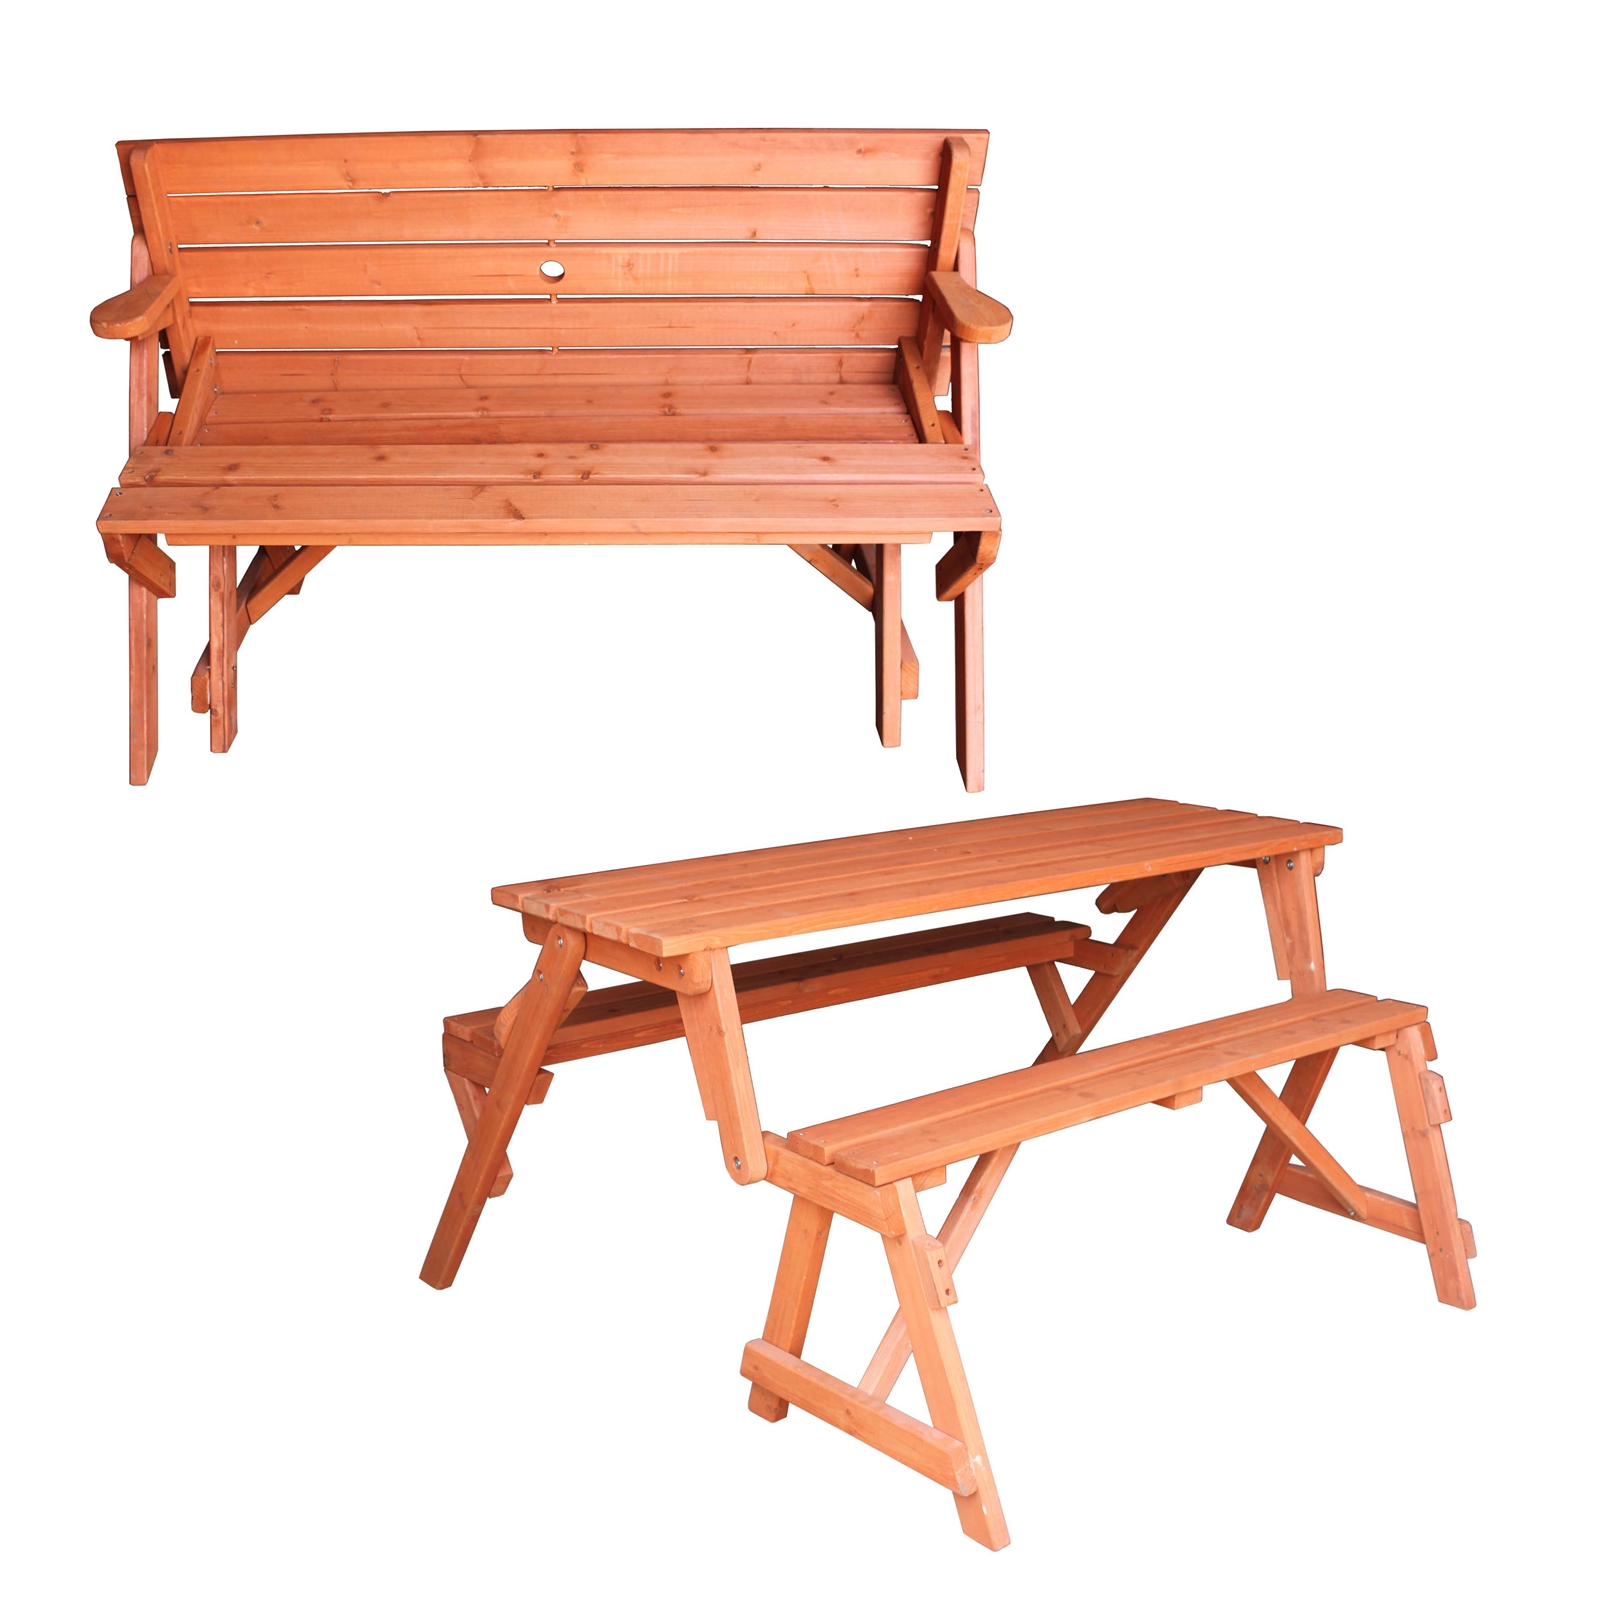 Foxhunter jardin en bois pliante picnic si ge table banc 5 for Banc de table en bois